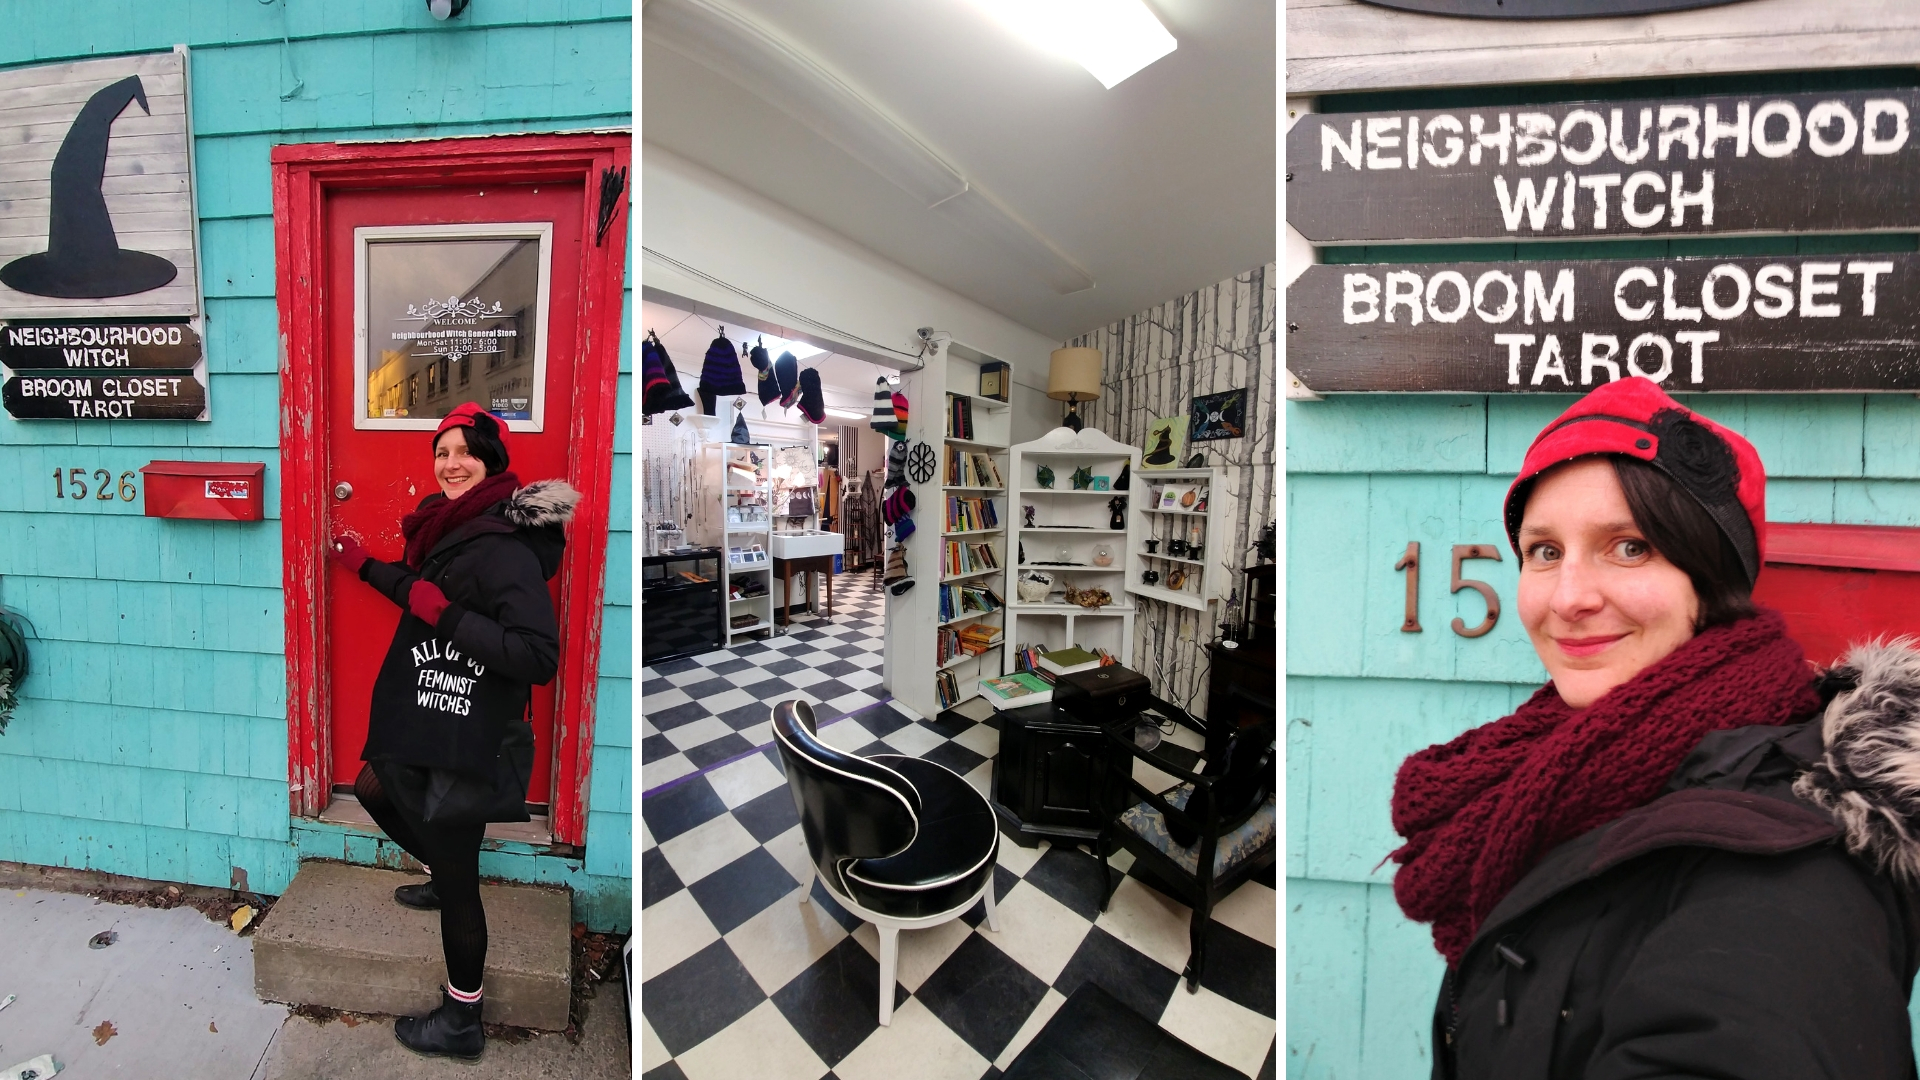 halifax shopping magasinage neighbourhod witch prince garden street queen street nouvelle-ecosse escapade road-trip blog voyage canada arpenter le chemin